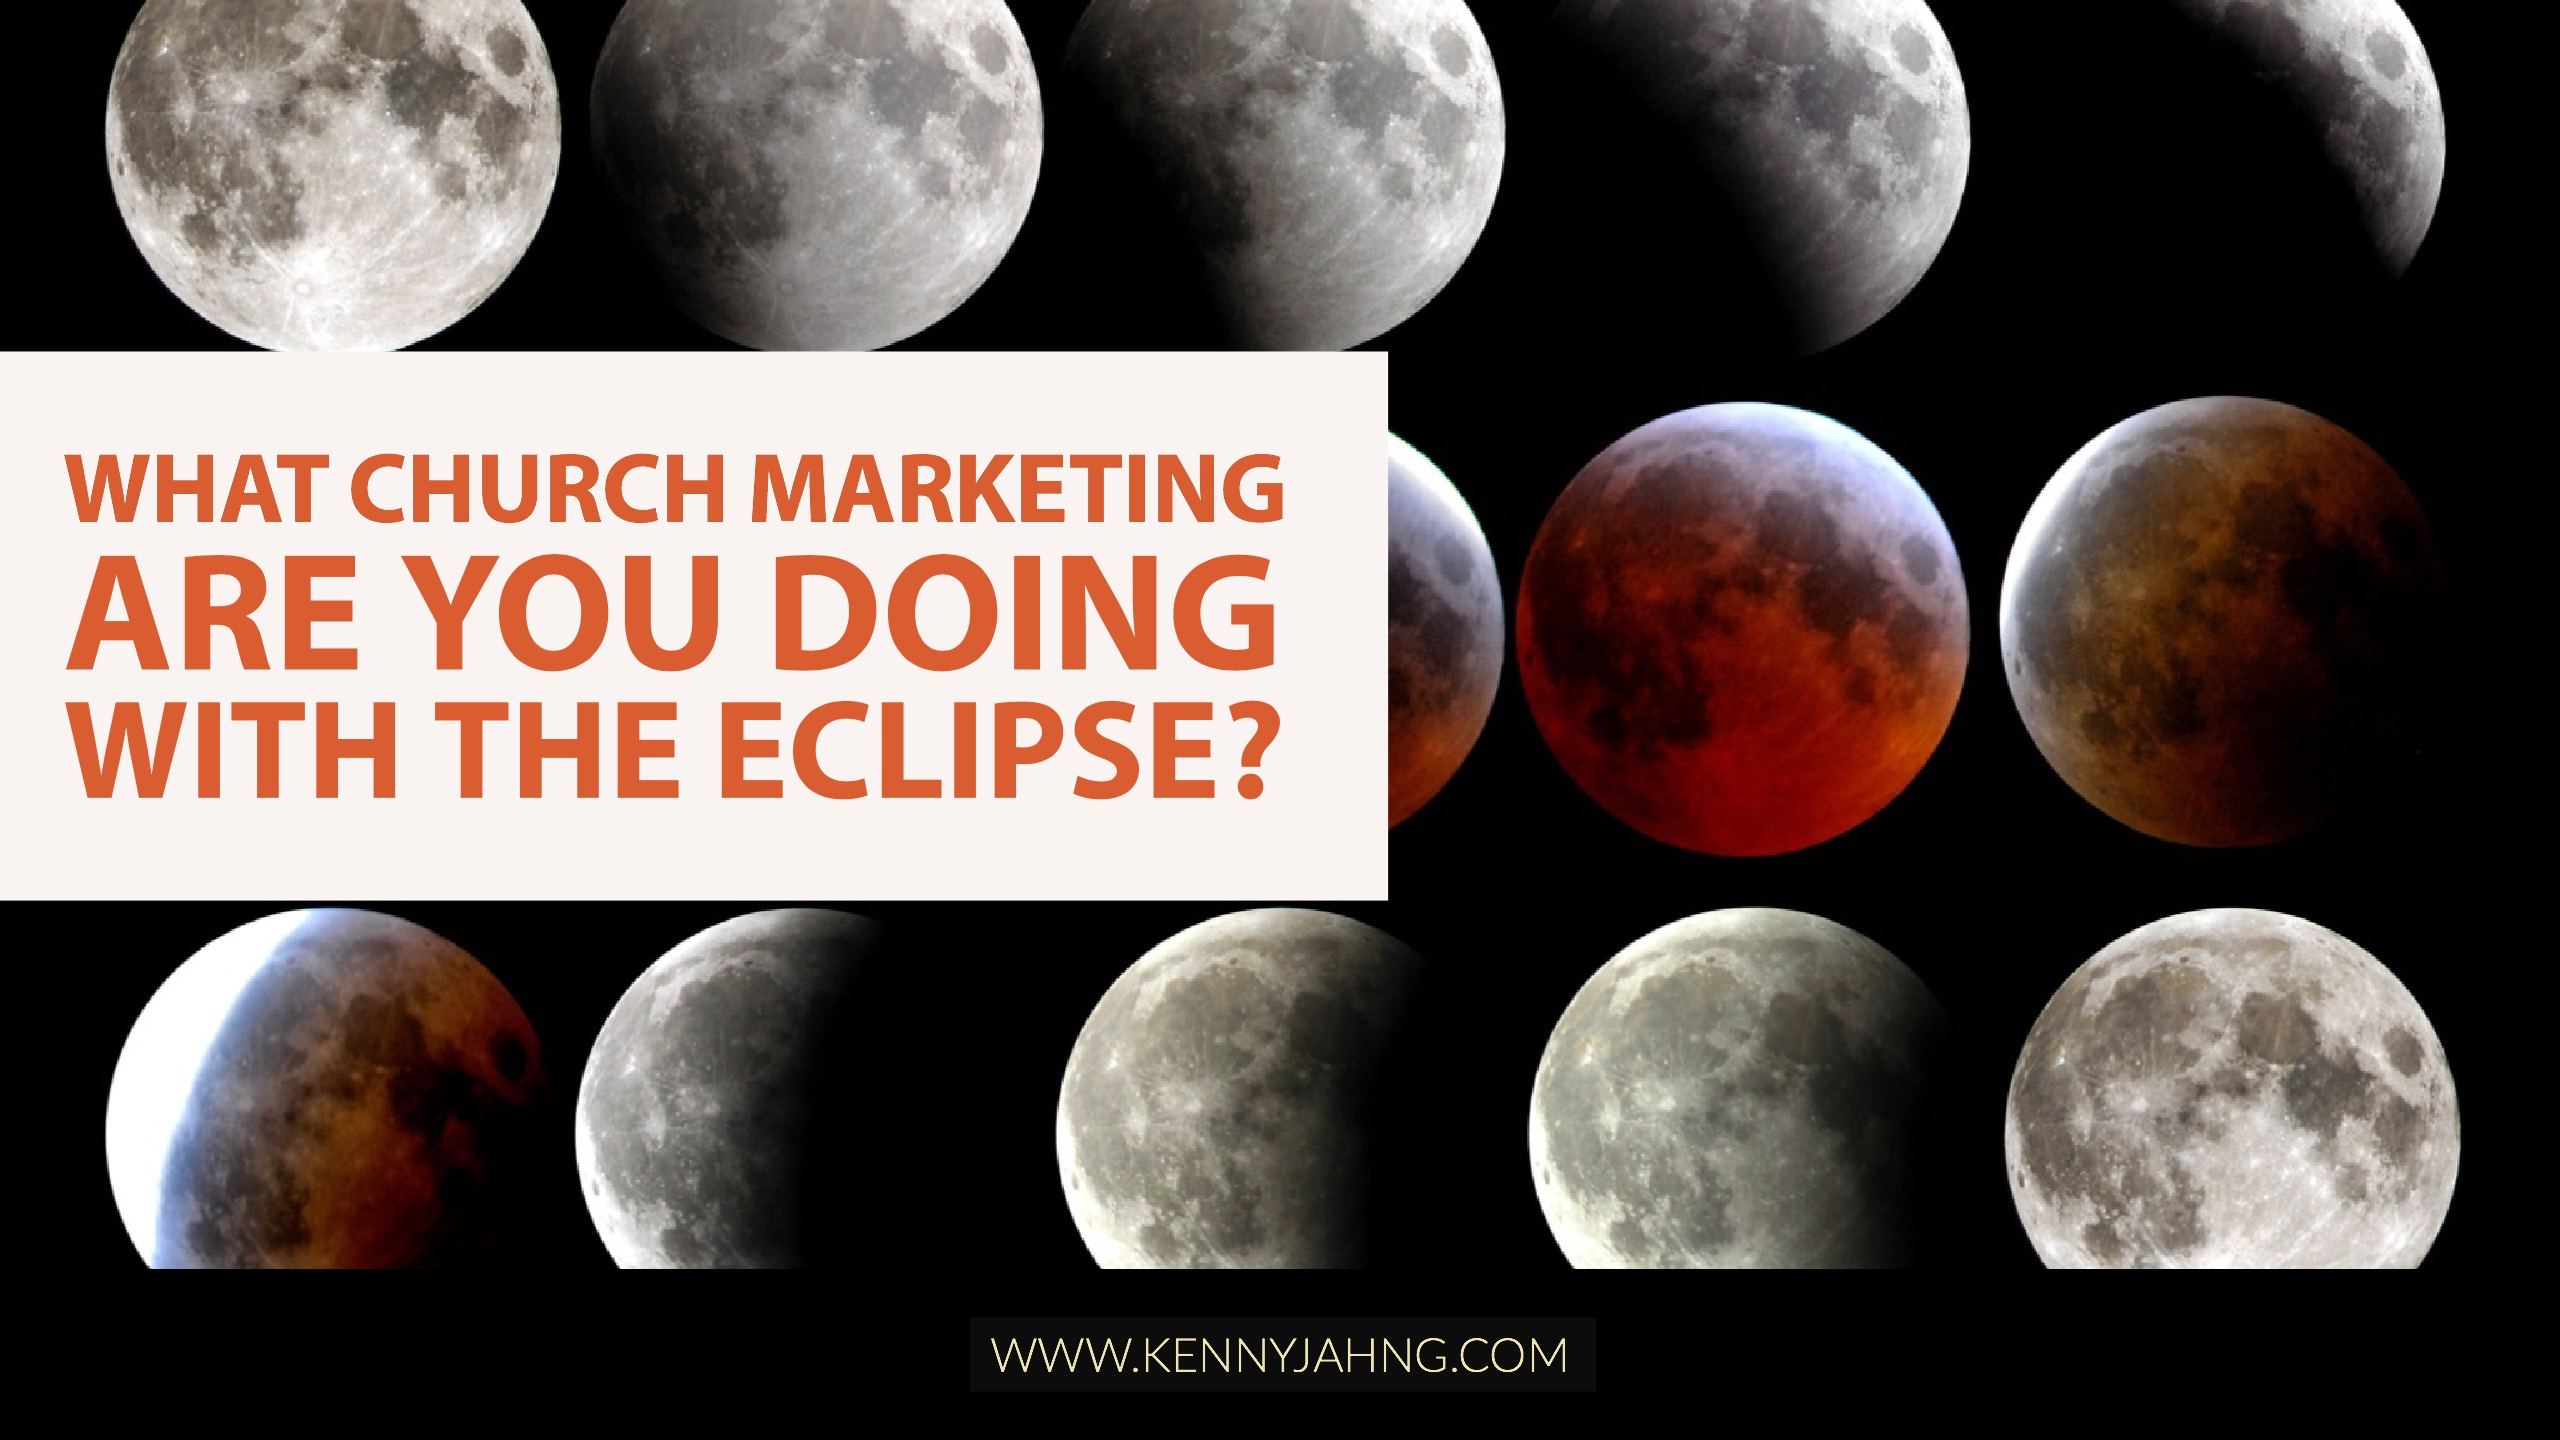 solar eclipse 2017 and church marketing